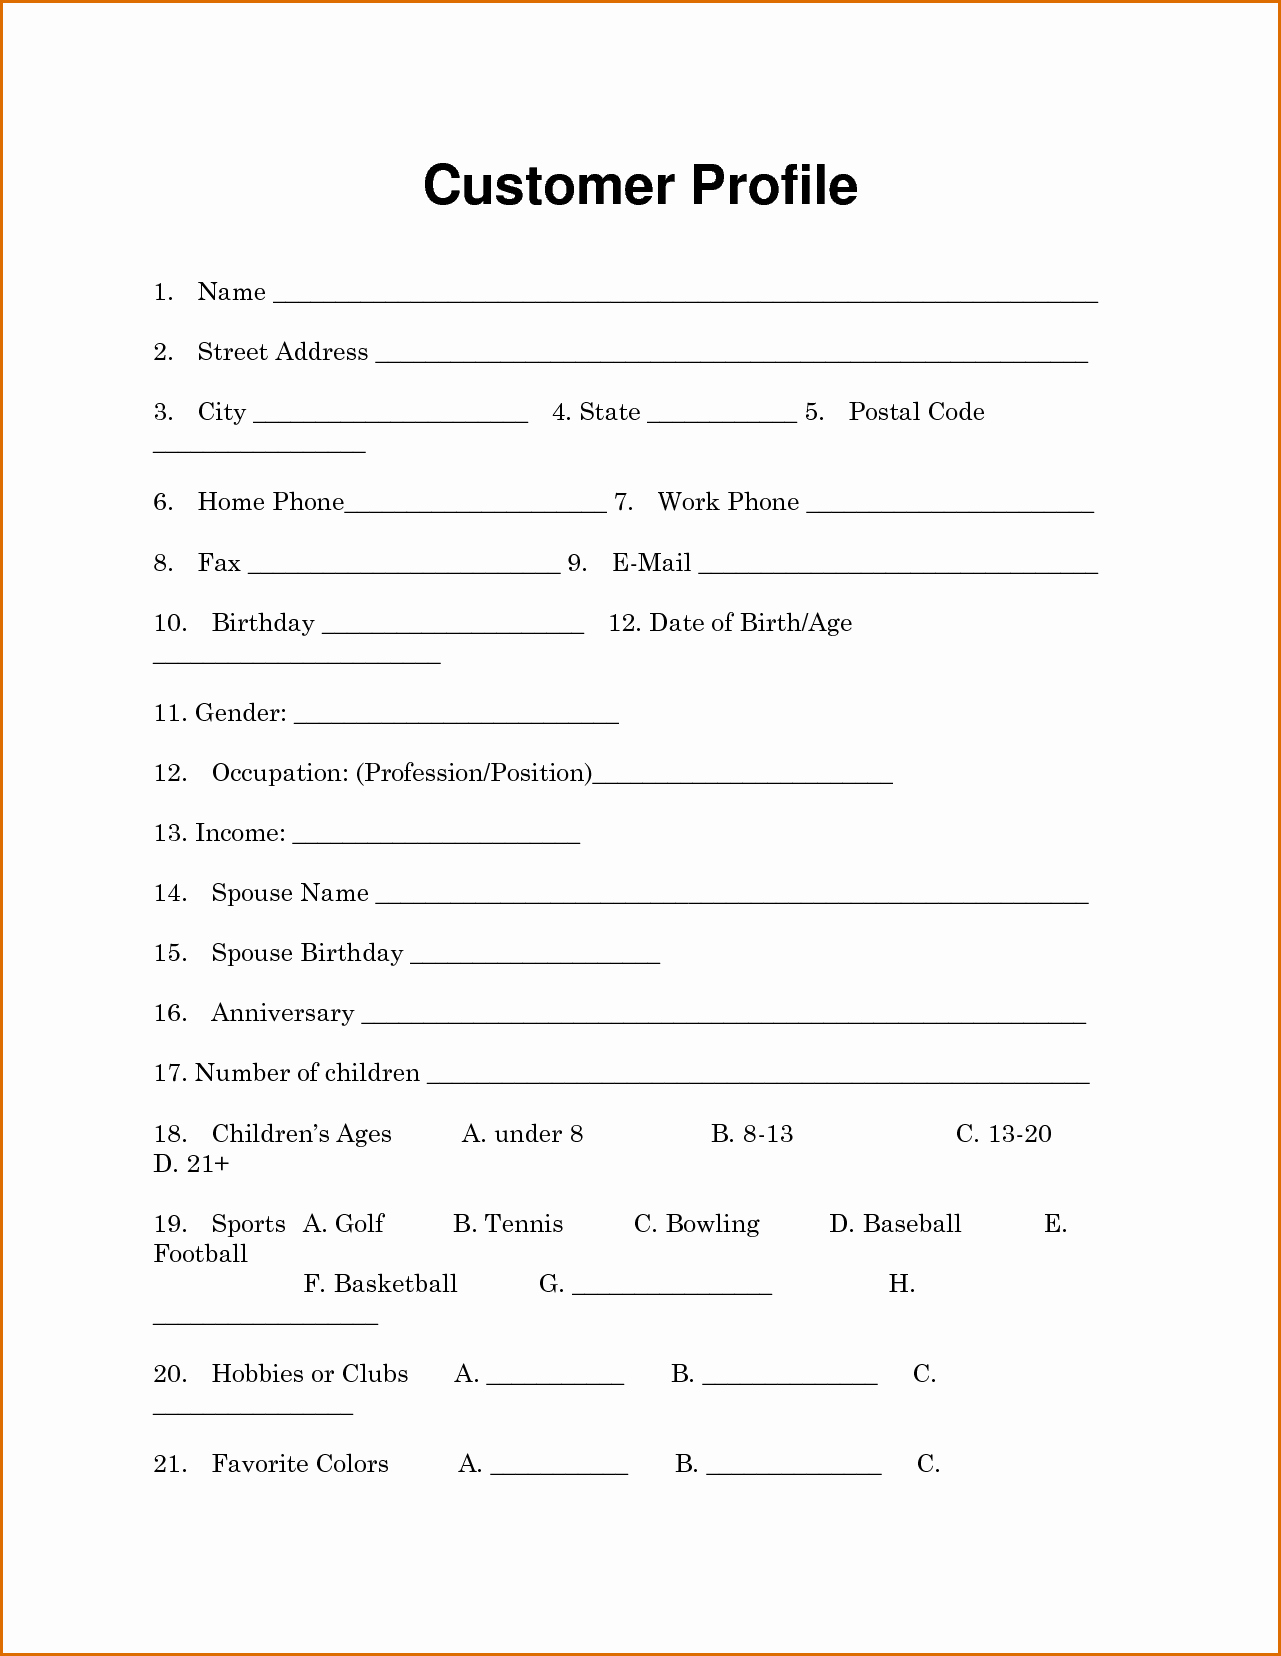 New Customer form Template Luxury 13 Customer Information form Template